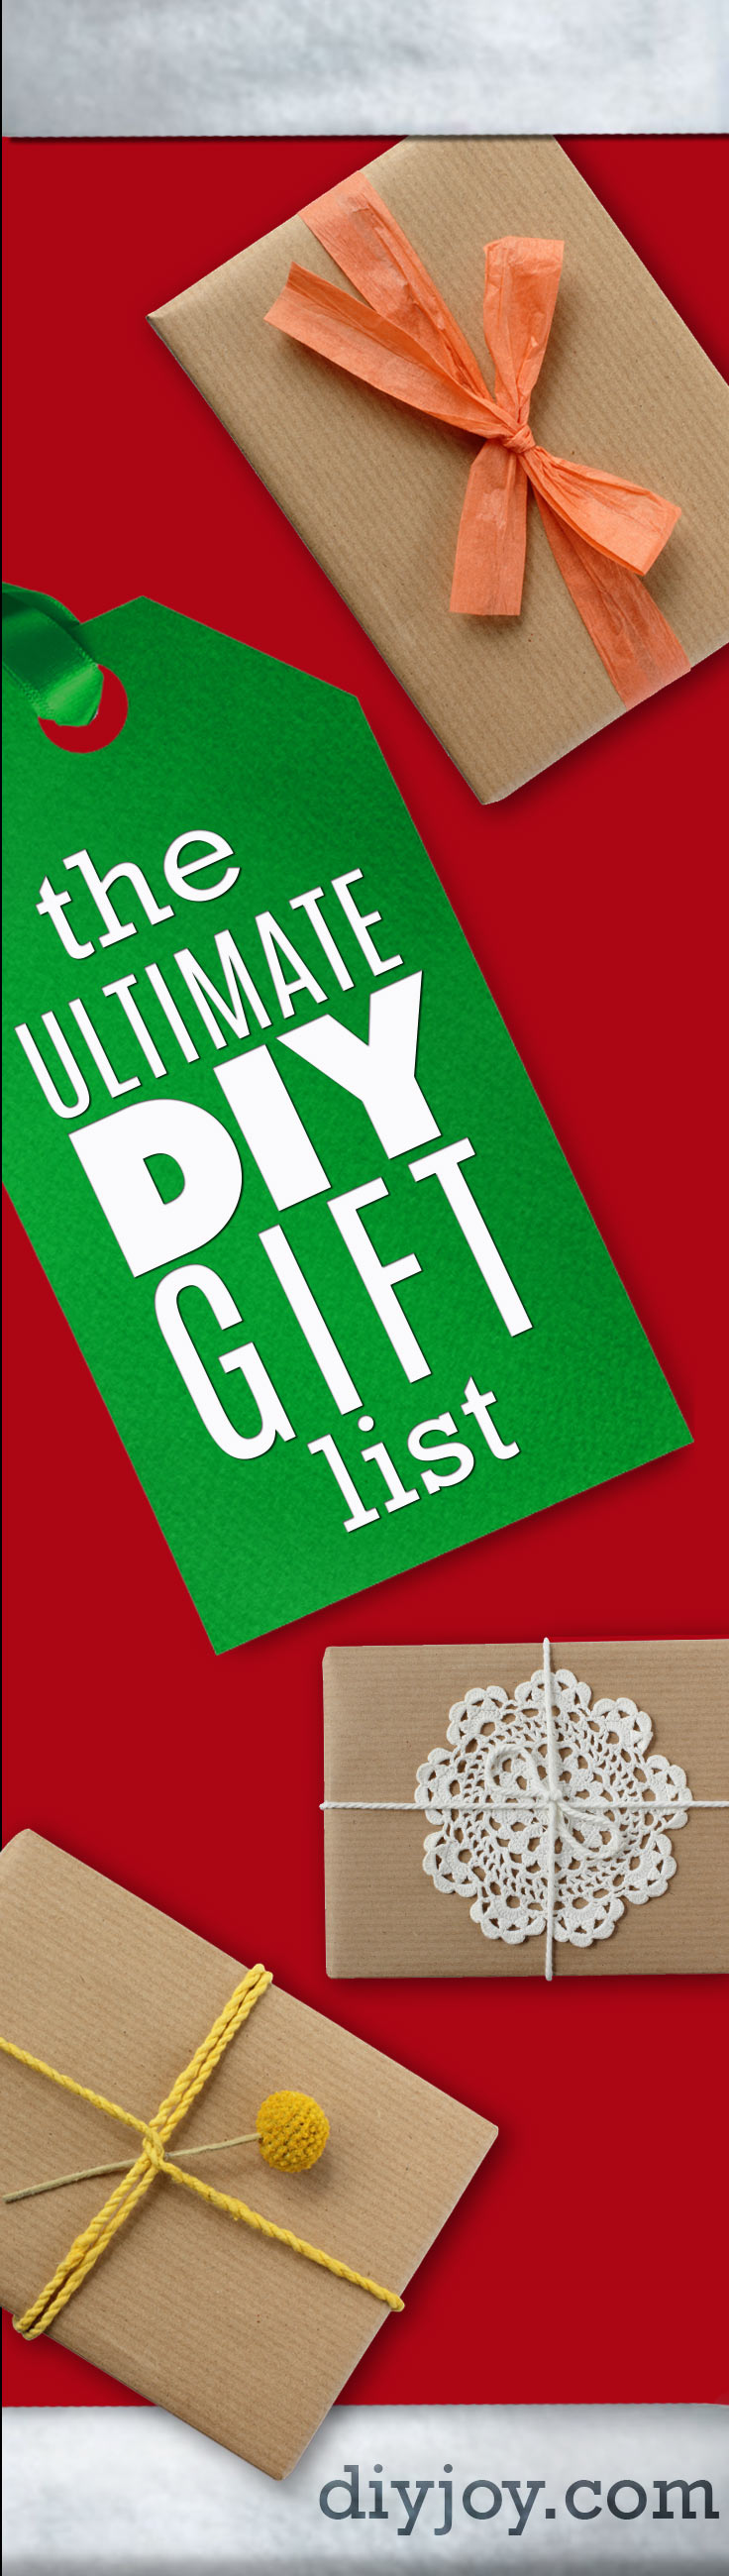 The Ultimate Diy Christmas Gifts List